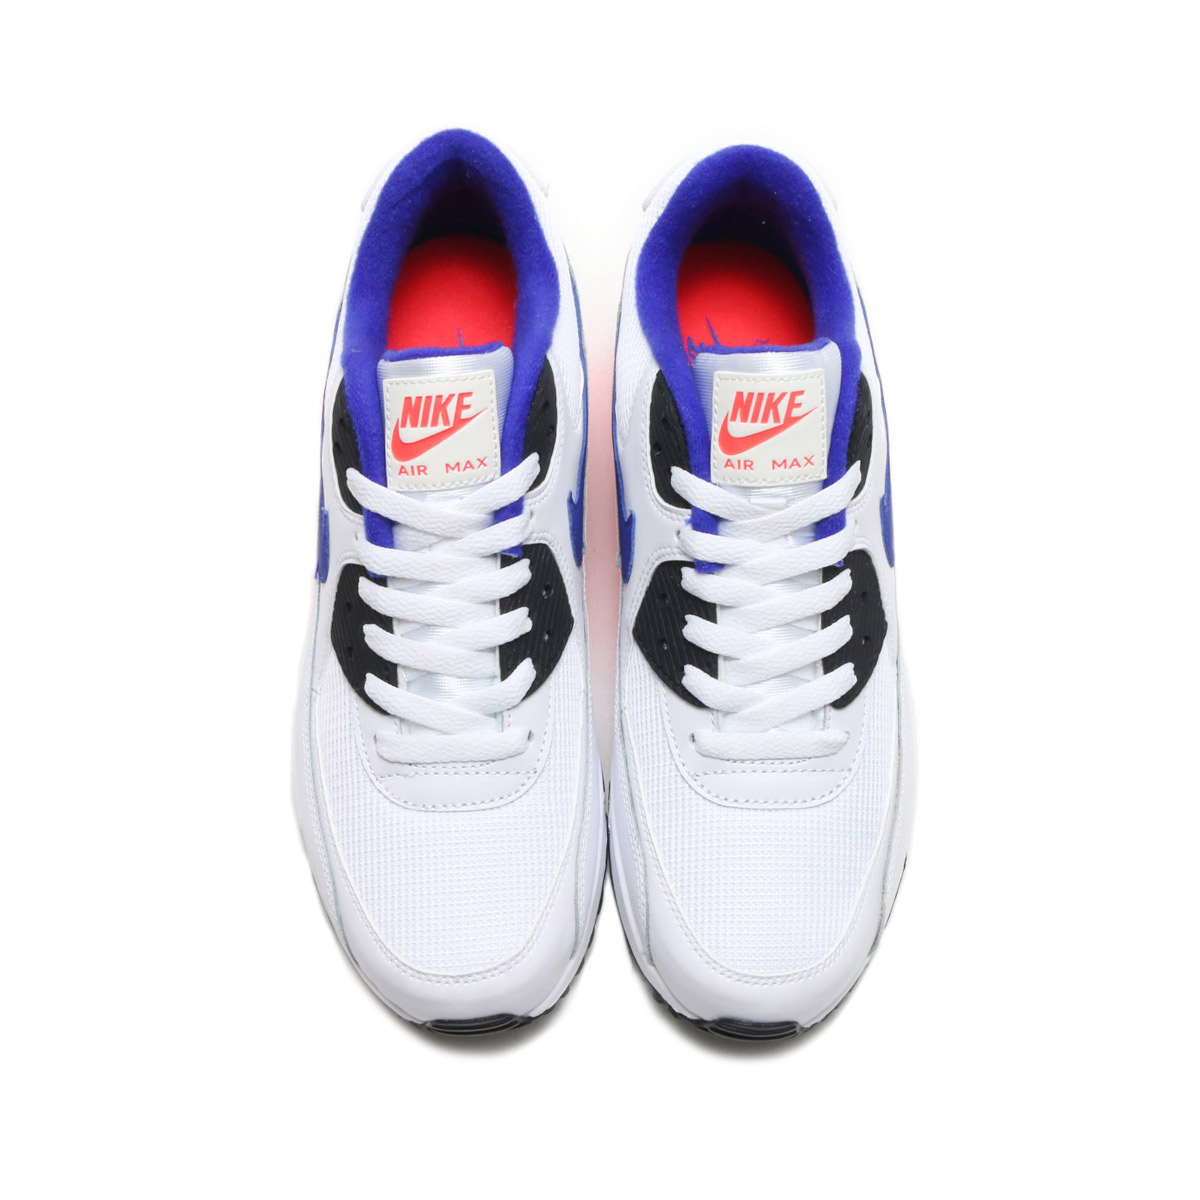 timeless design 61aa4 2b2a8 maximum point 10 times that is targeted for all articles! NIKE AIR MAX 90  ESSENTIAL (Kie Ney AMAX 90 essential) (WHITE ULTRAMARINE-SOLAR RED-BLACK)  18SP-S